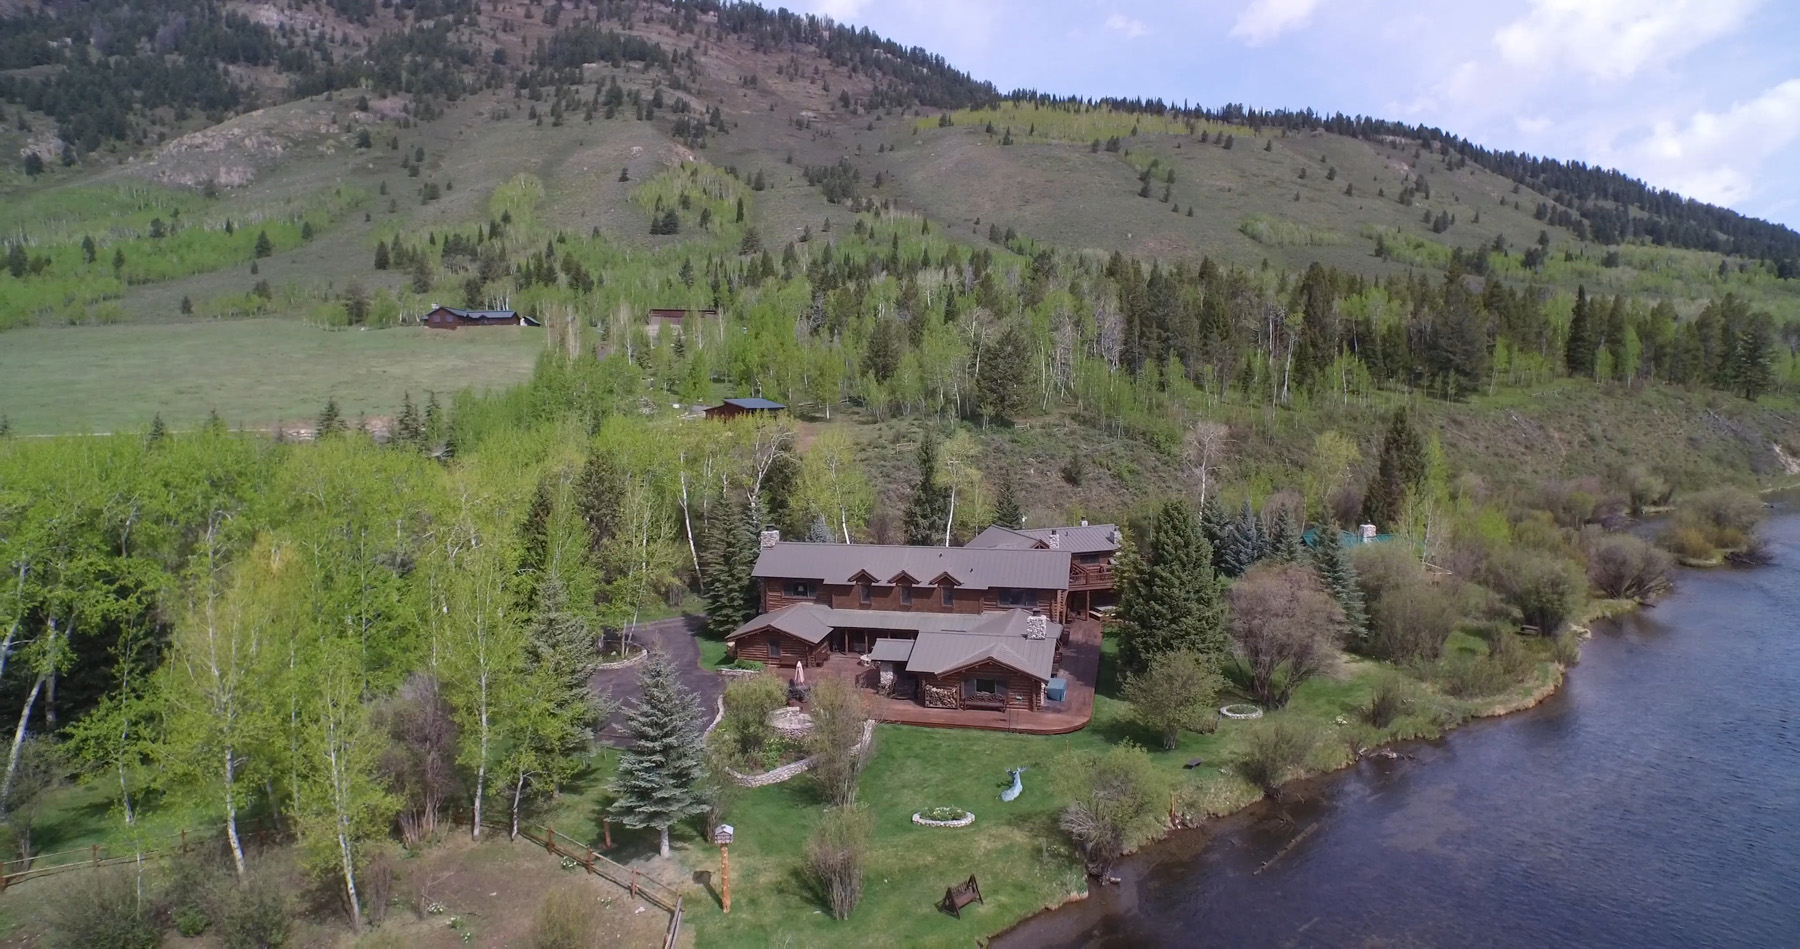 独户住宅 为 销售 在 The Historic Lazy Moose Ranch 24552485 N Fish Creek Road 威尔逊, 怀俄明州, 83014 Jackson Hole, 美国